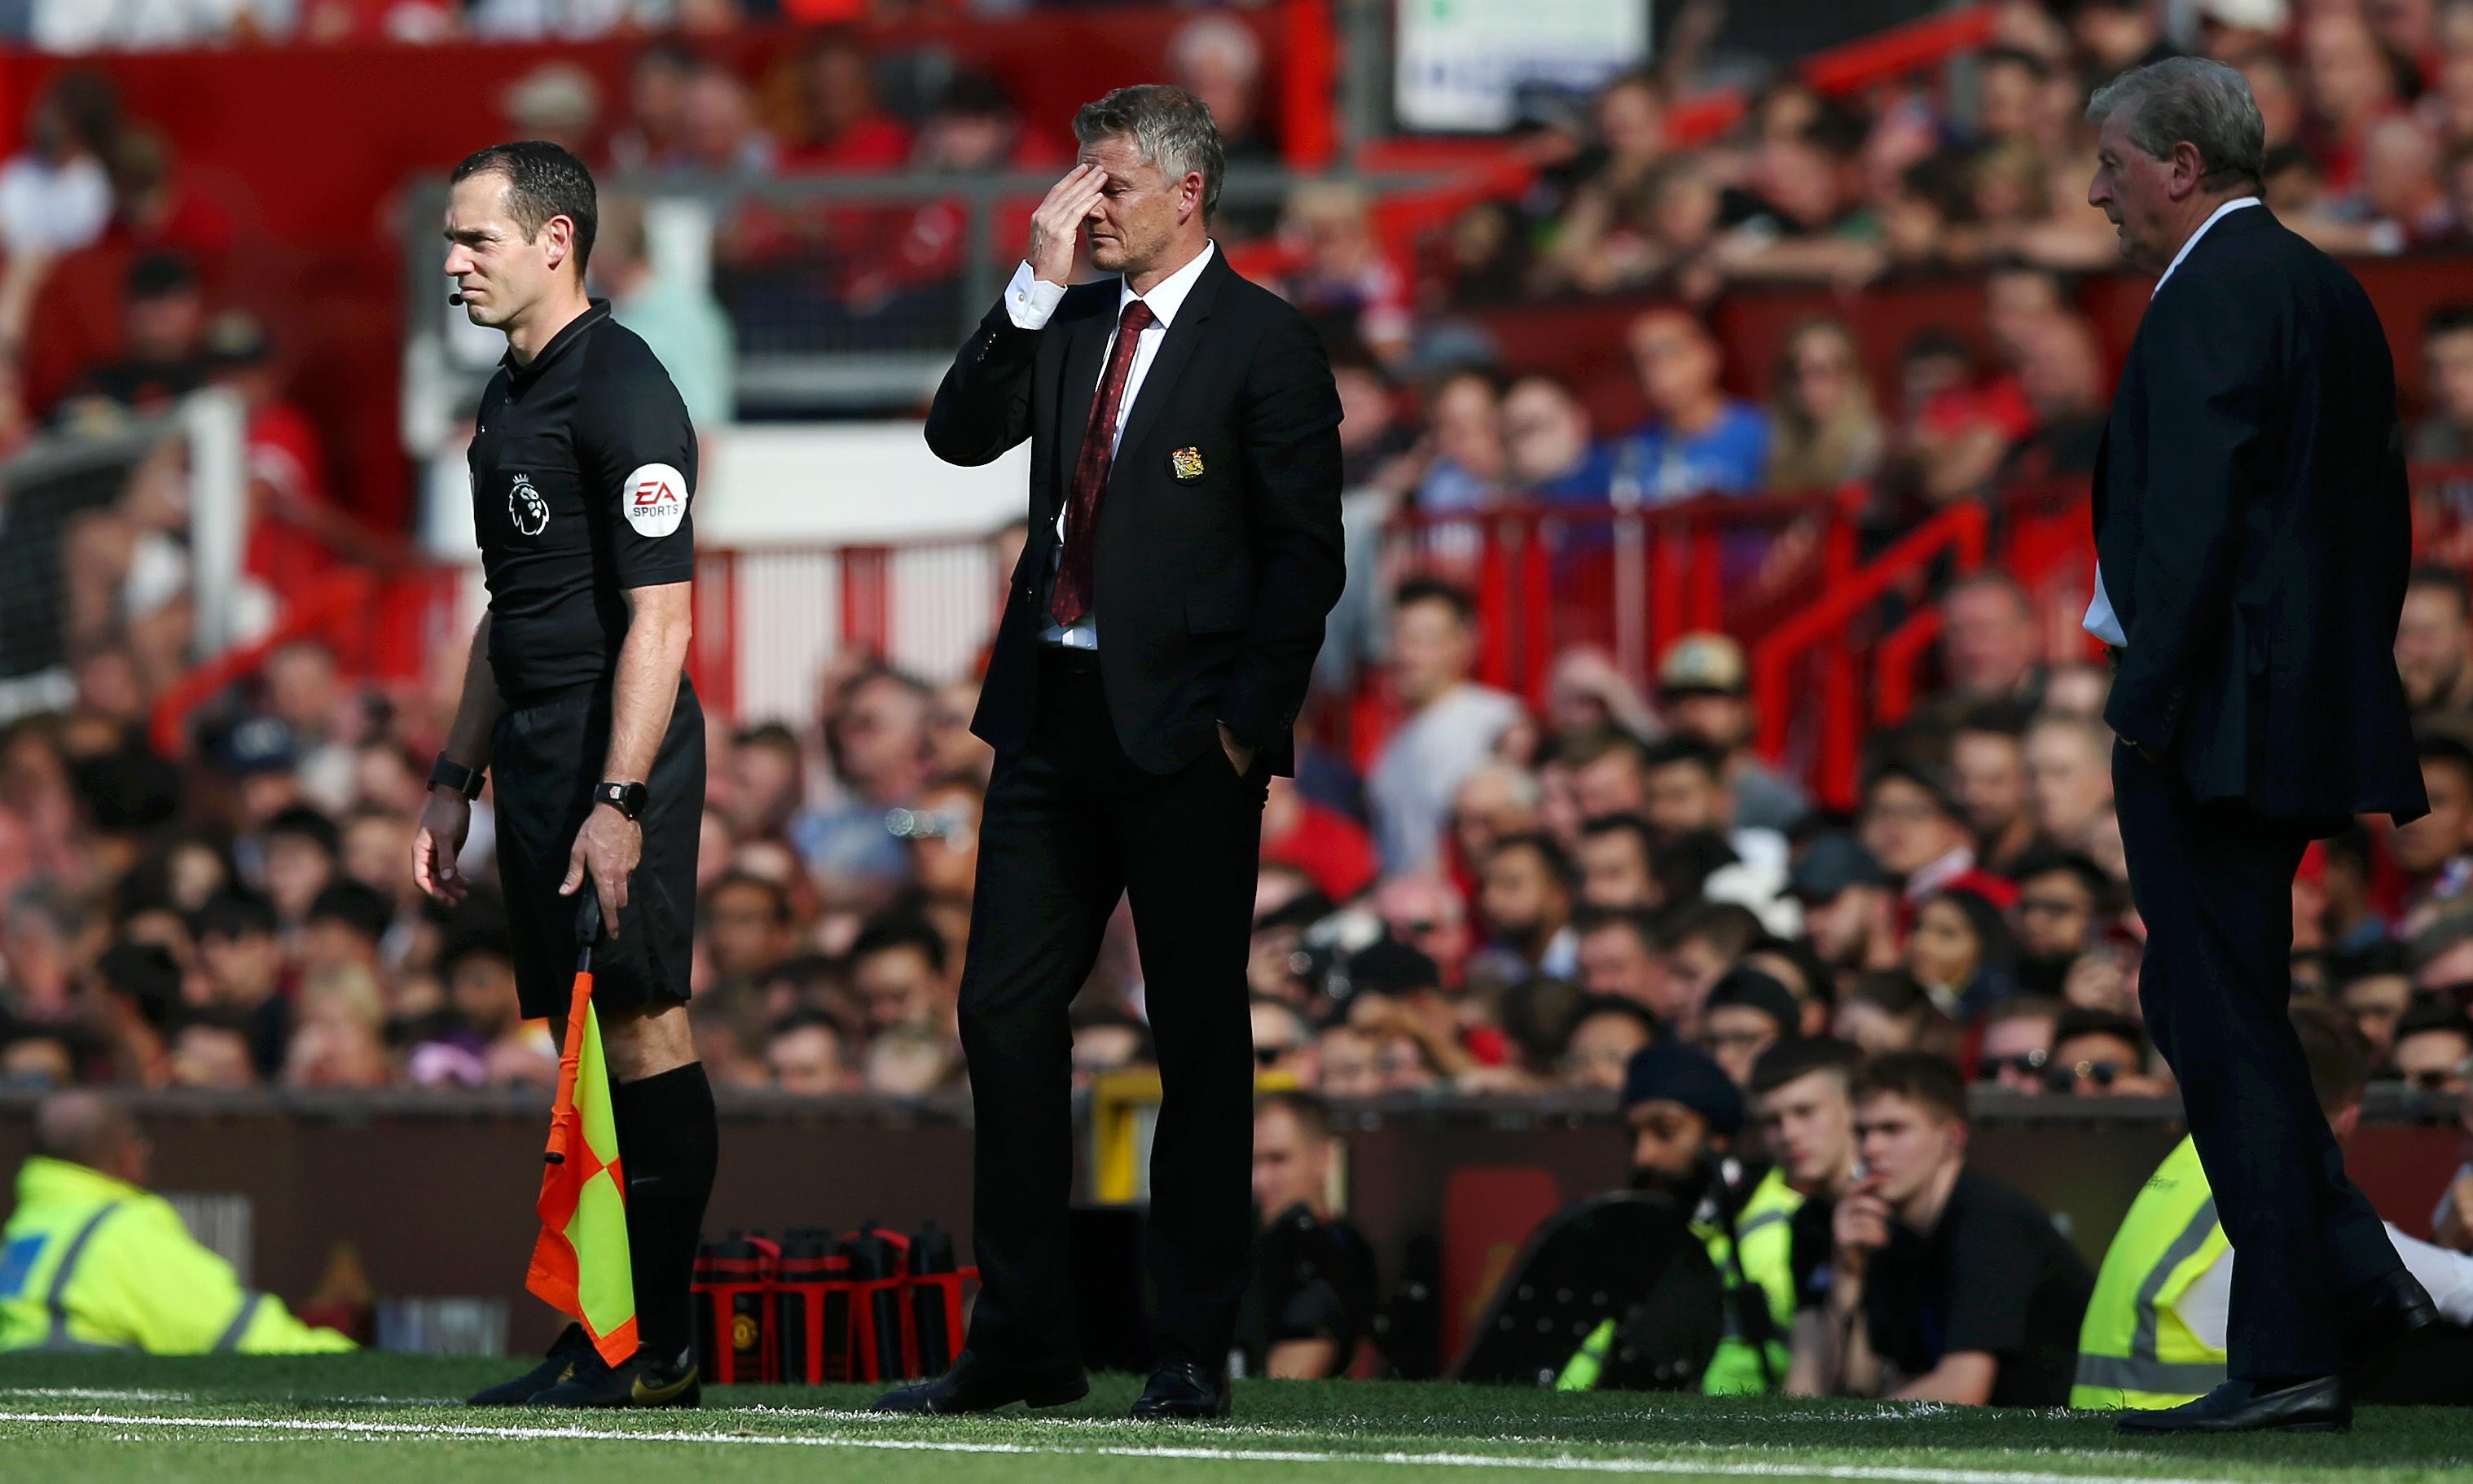 Ole Gunnar Solskjær and the credibility conundrum at Manchester United